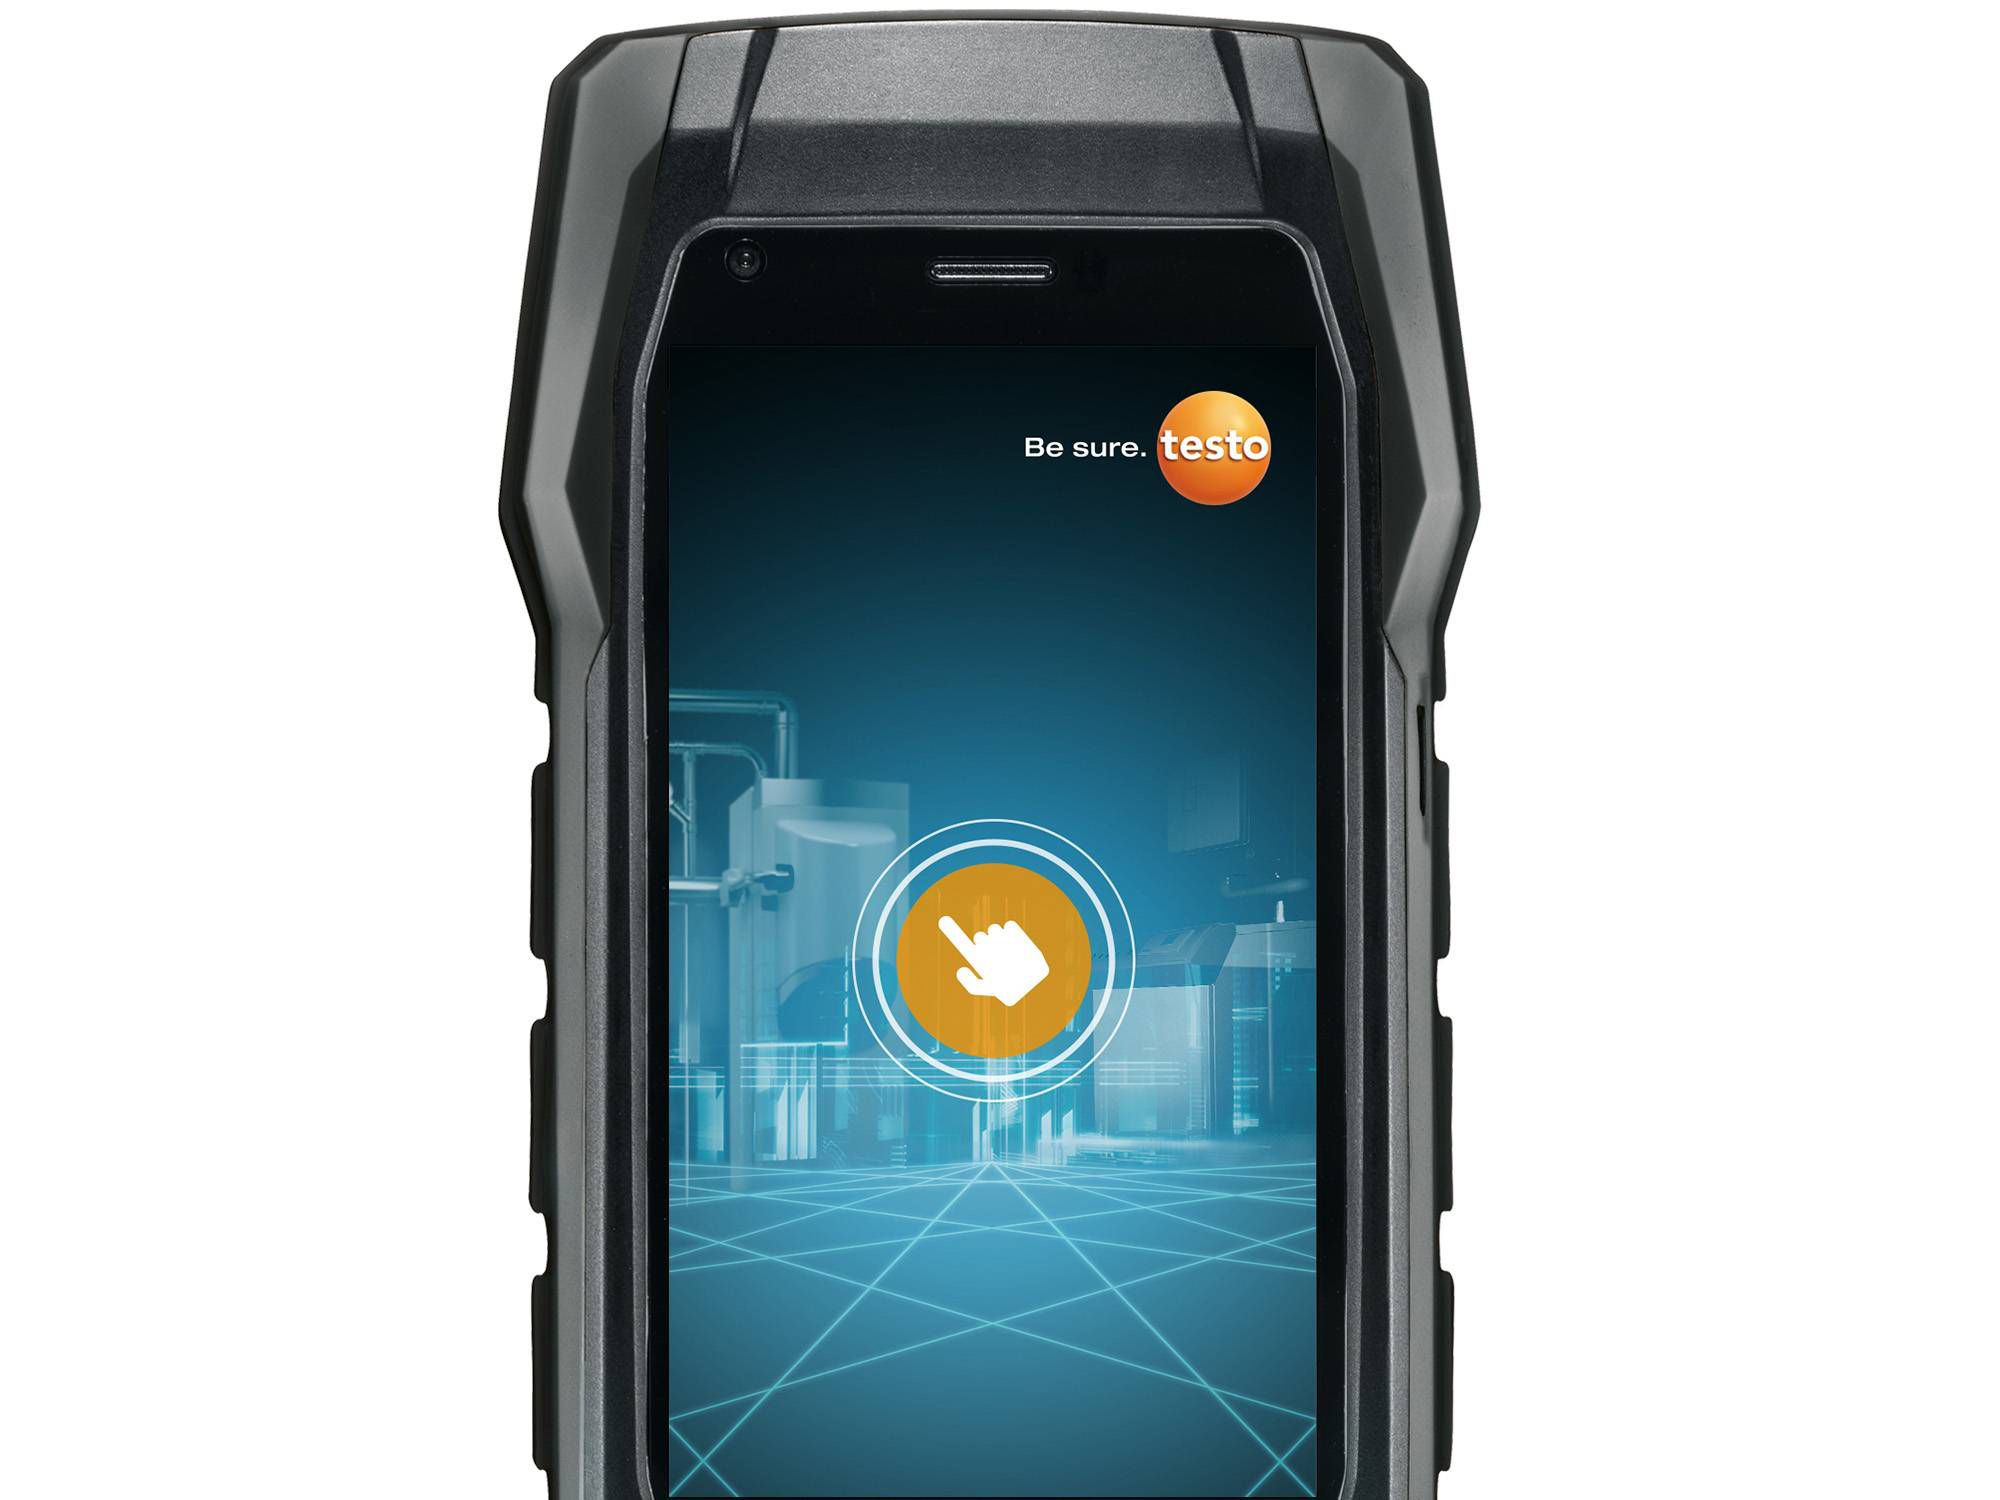 Flue gas analyzer operated with your smartphone